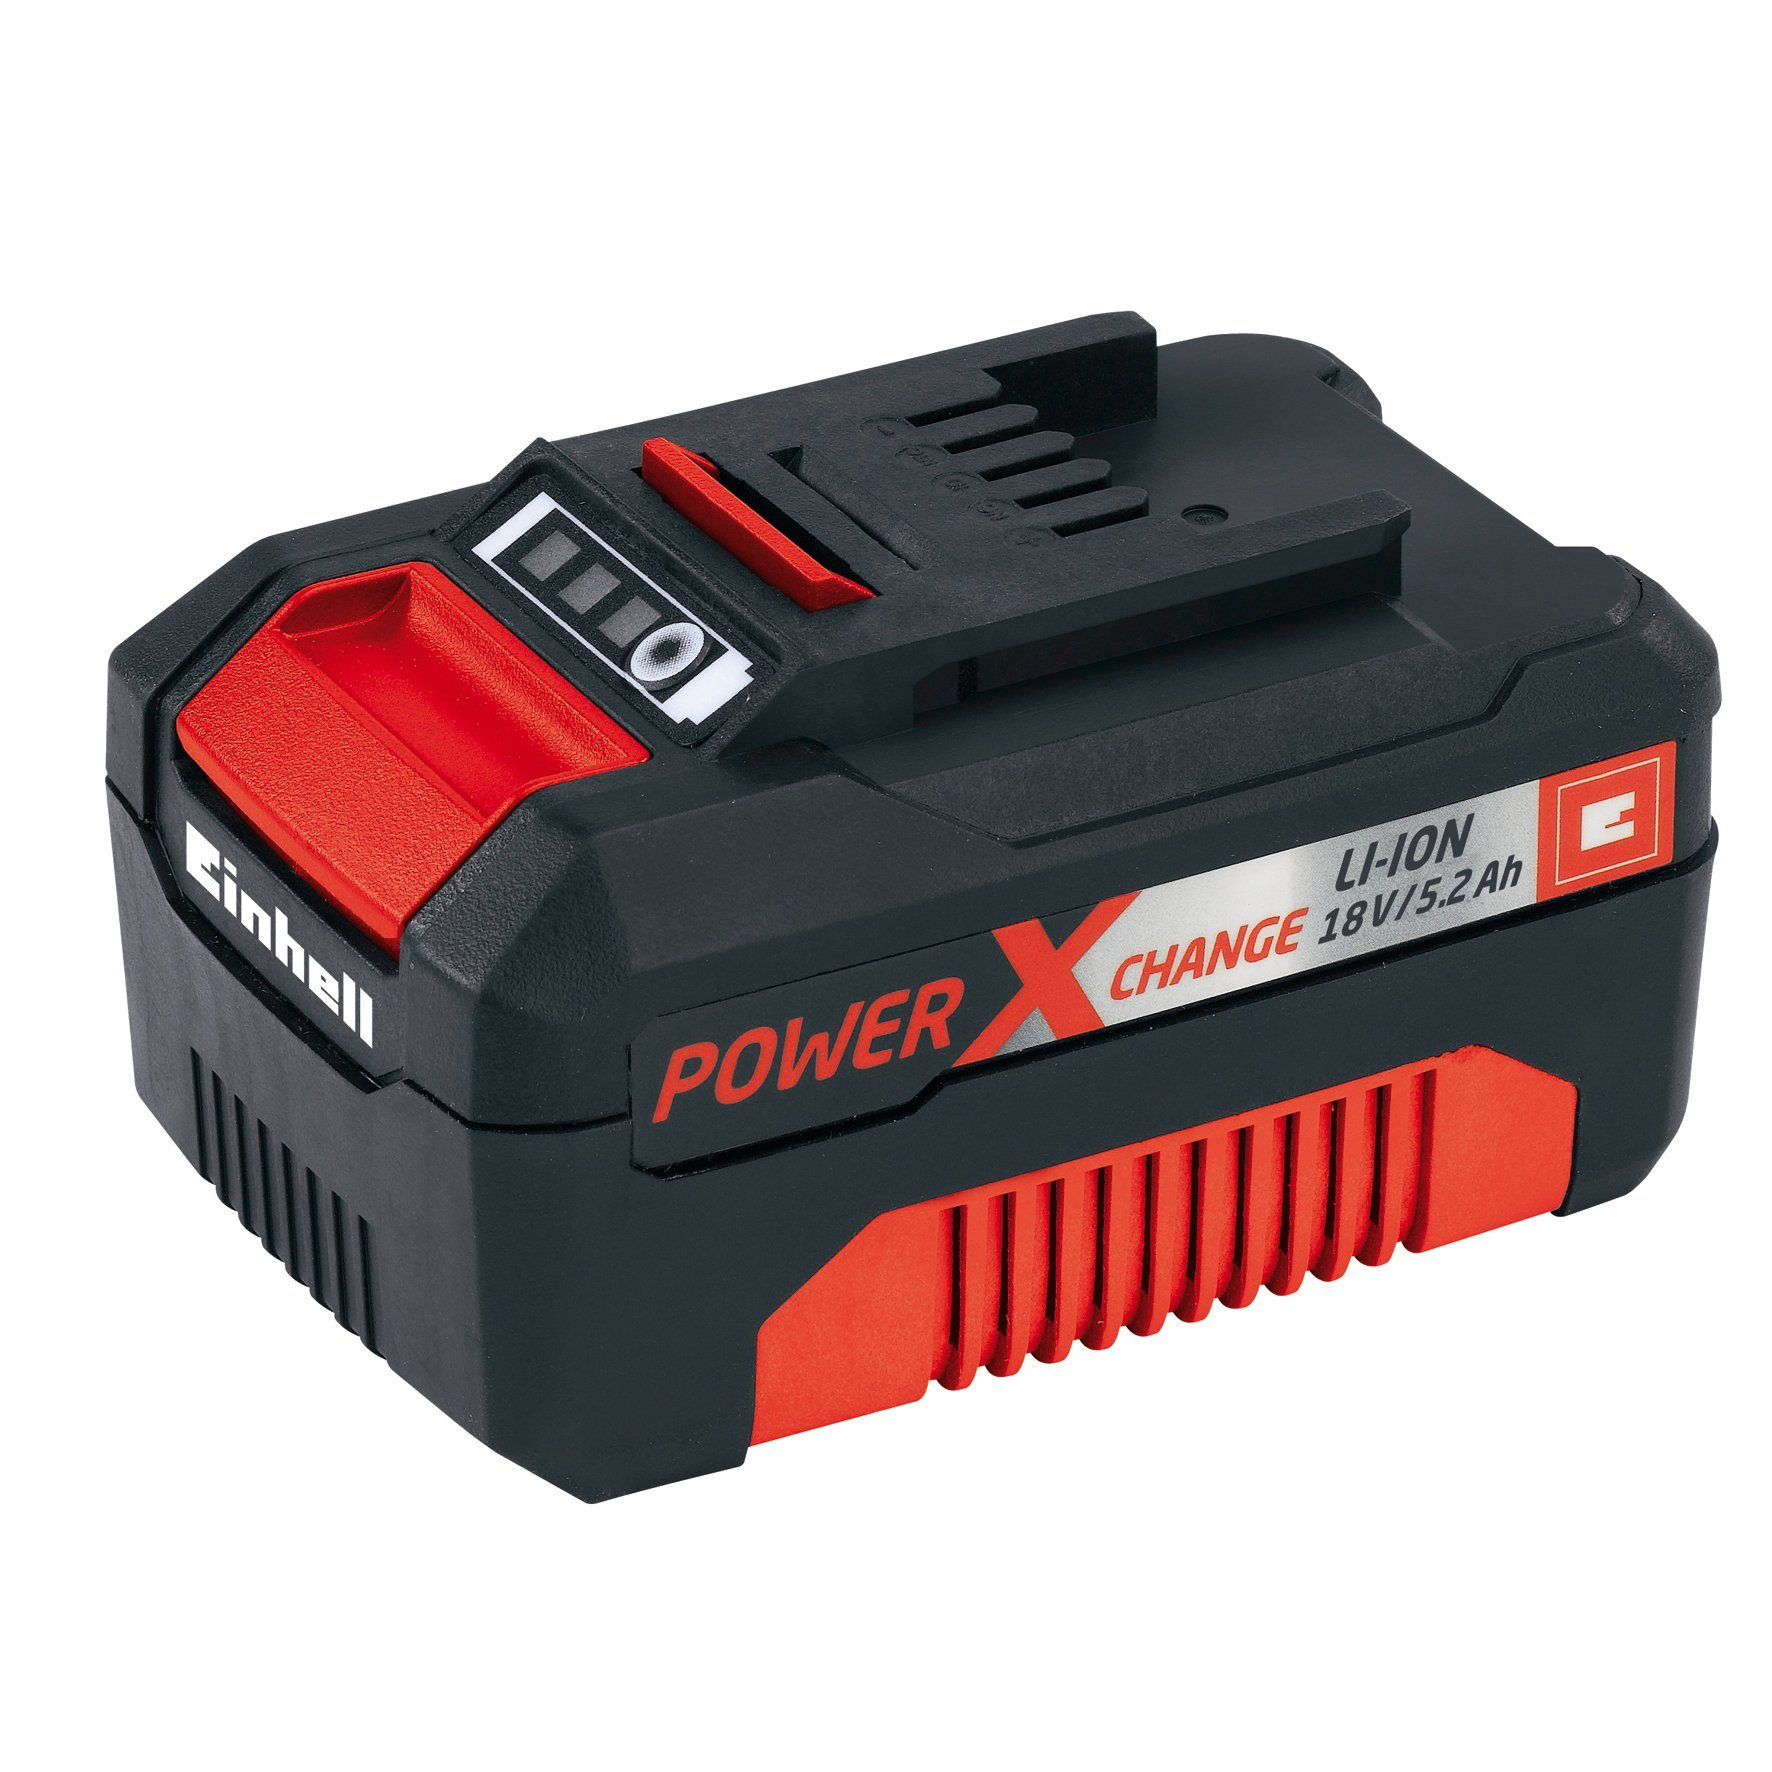 Lithium-Ionen-Akku »Power X-Change 18 V 5,2 Ah«, Power X-Change Serie